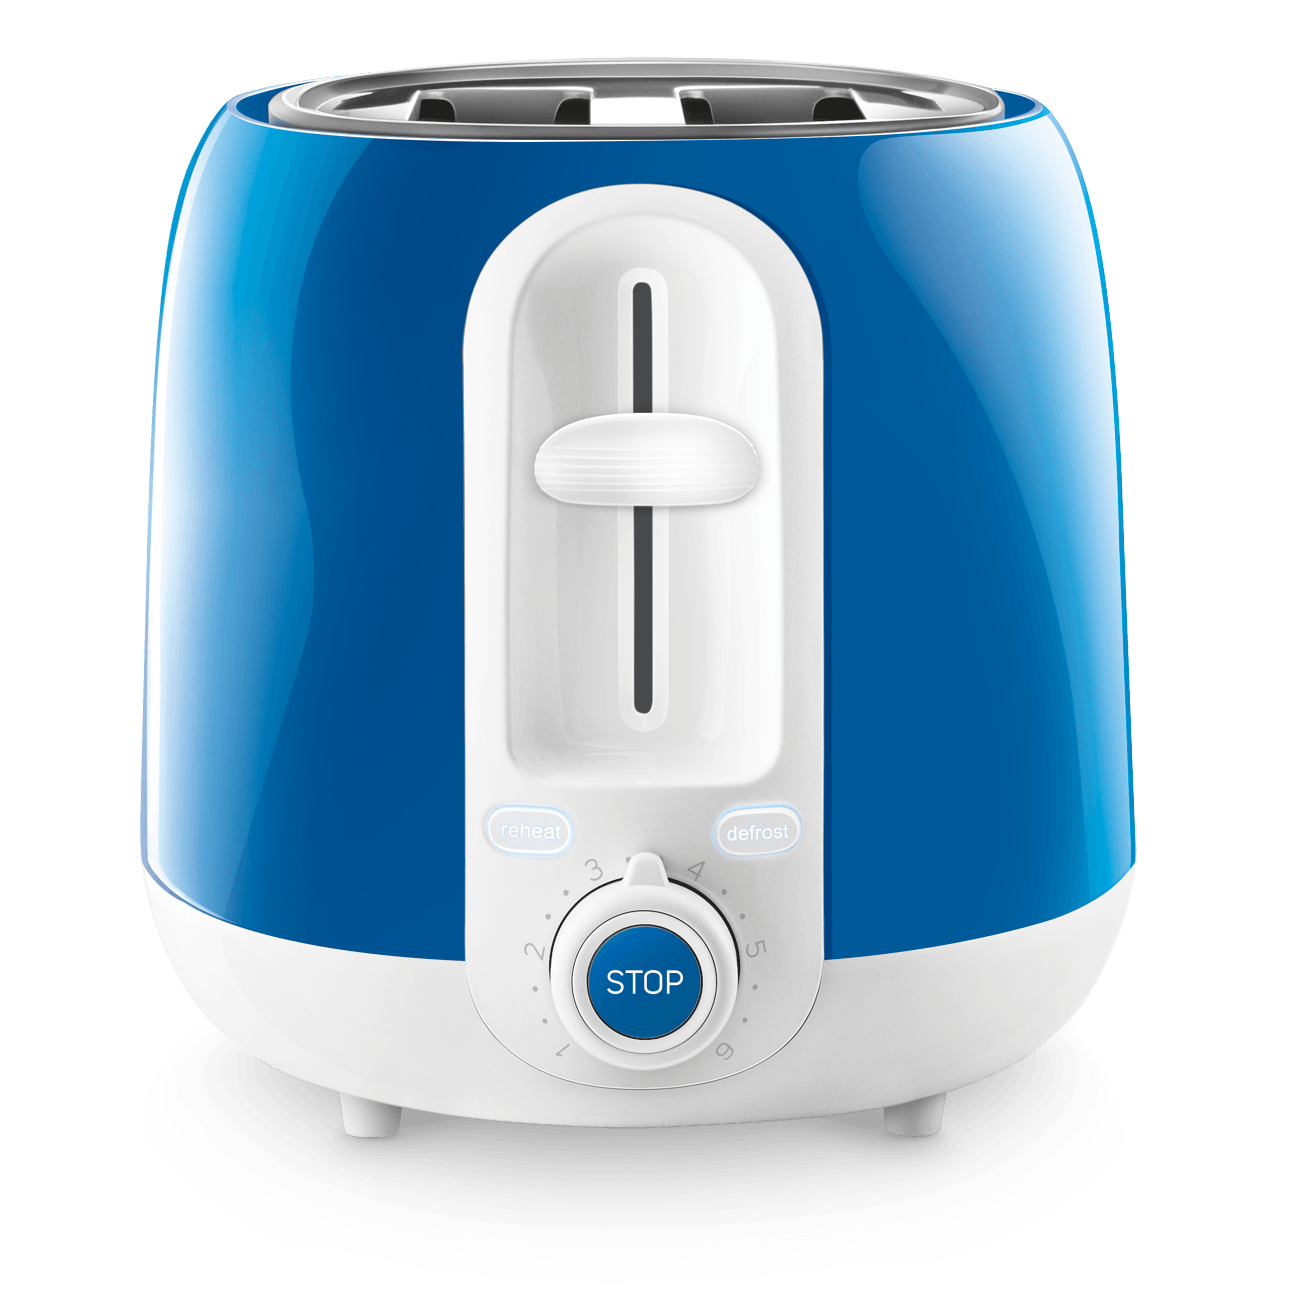 graphic freeuse download Sts bl sencor let. Toaster clipart toster.